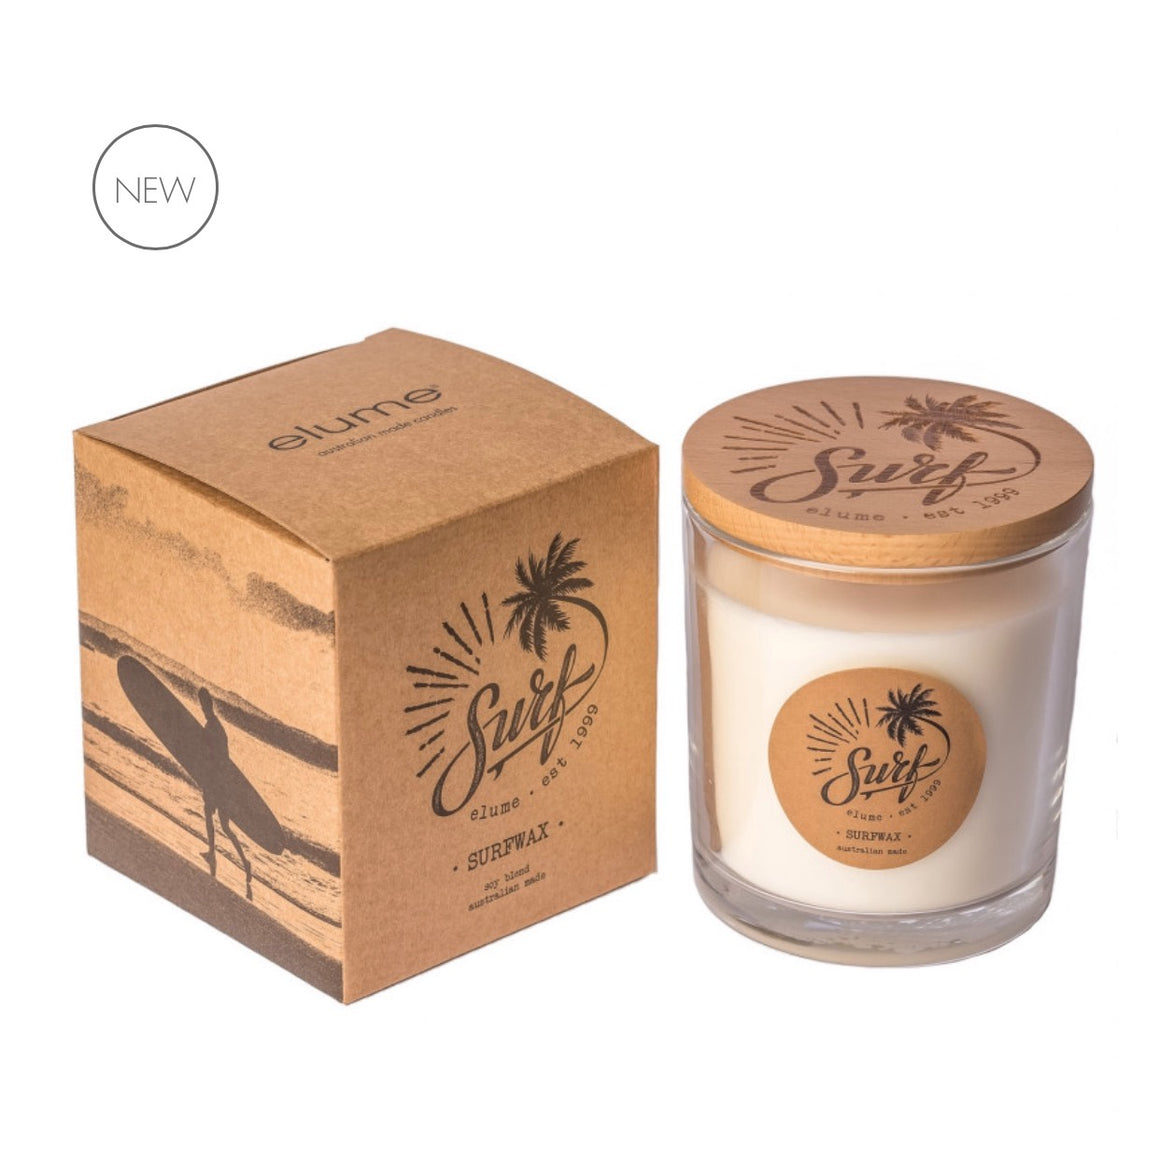 Candle Soy Jar Surf